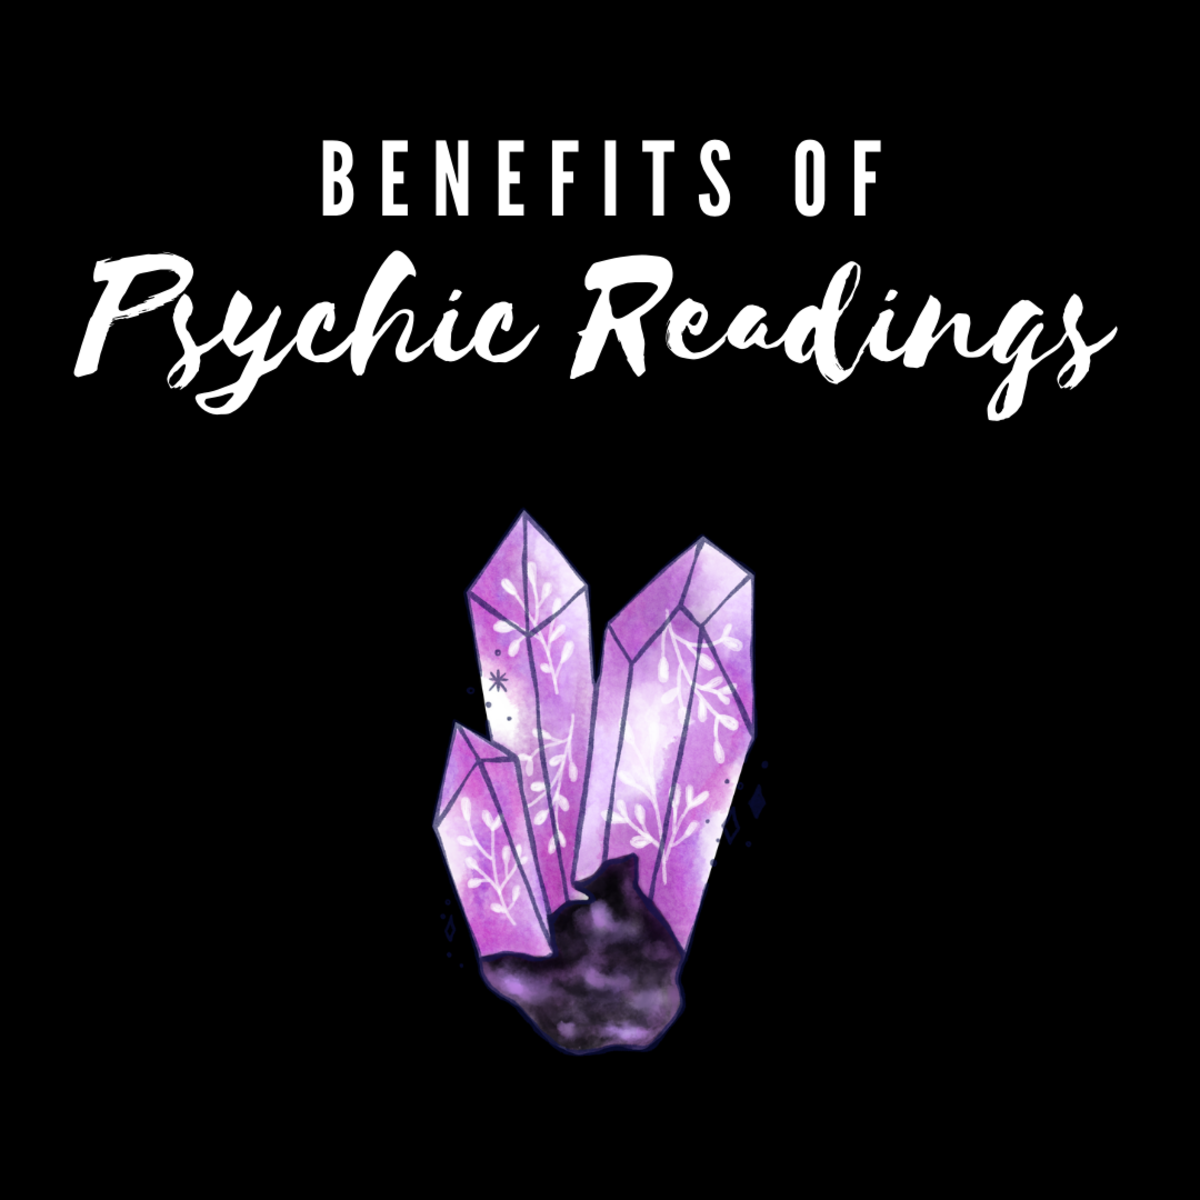 Learn about the many benefits of getting a psychic reading!